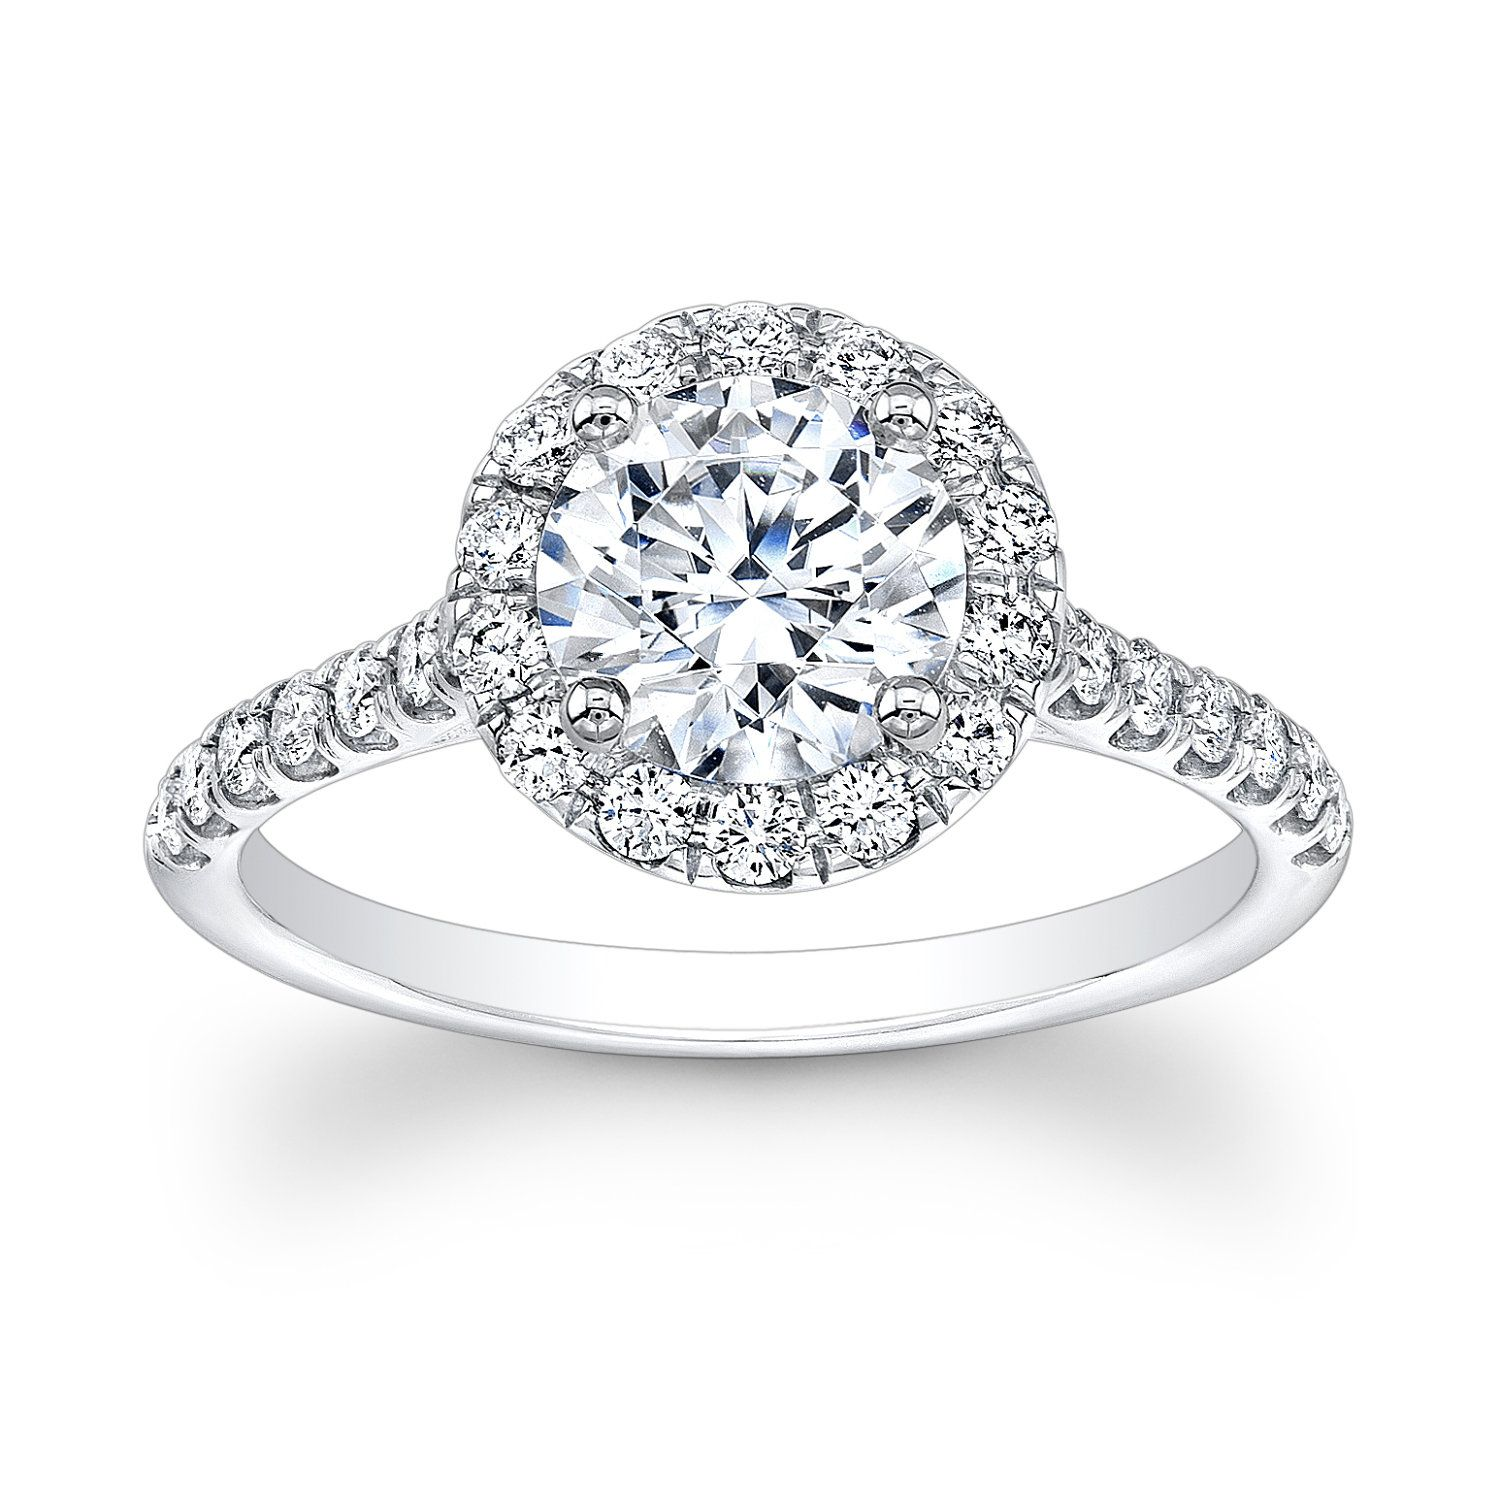 Ladies 14kt Diamond Engagement Ring With 160 Ct Round White Sapphire And  050 Ctw Gvs2 Diamond Quality